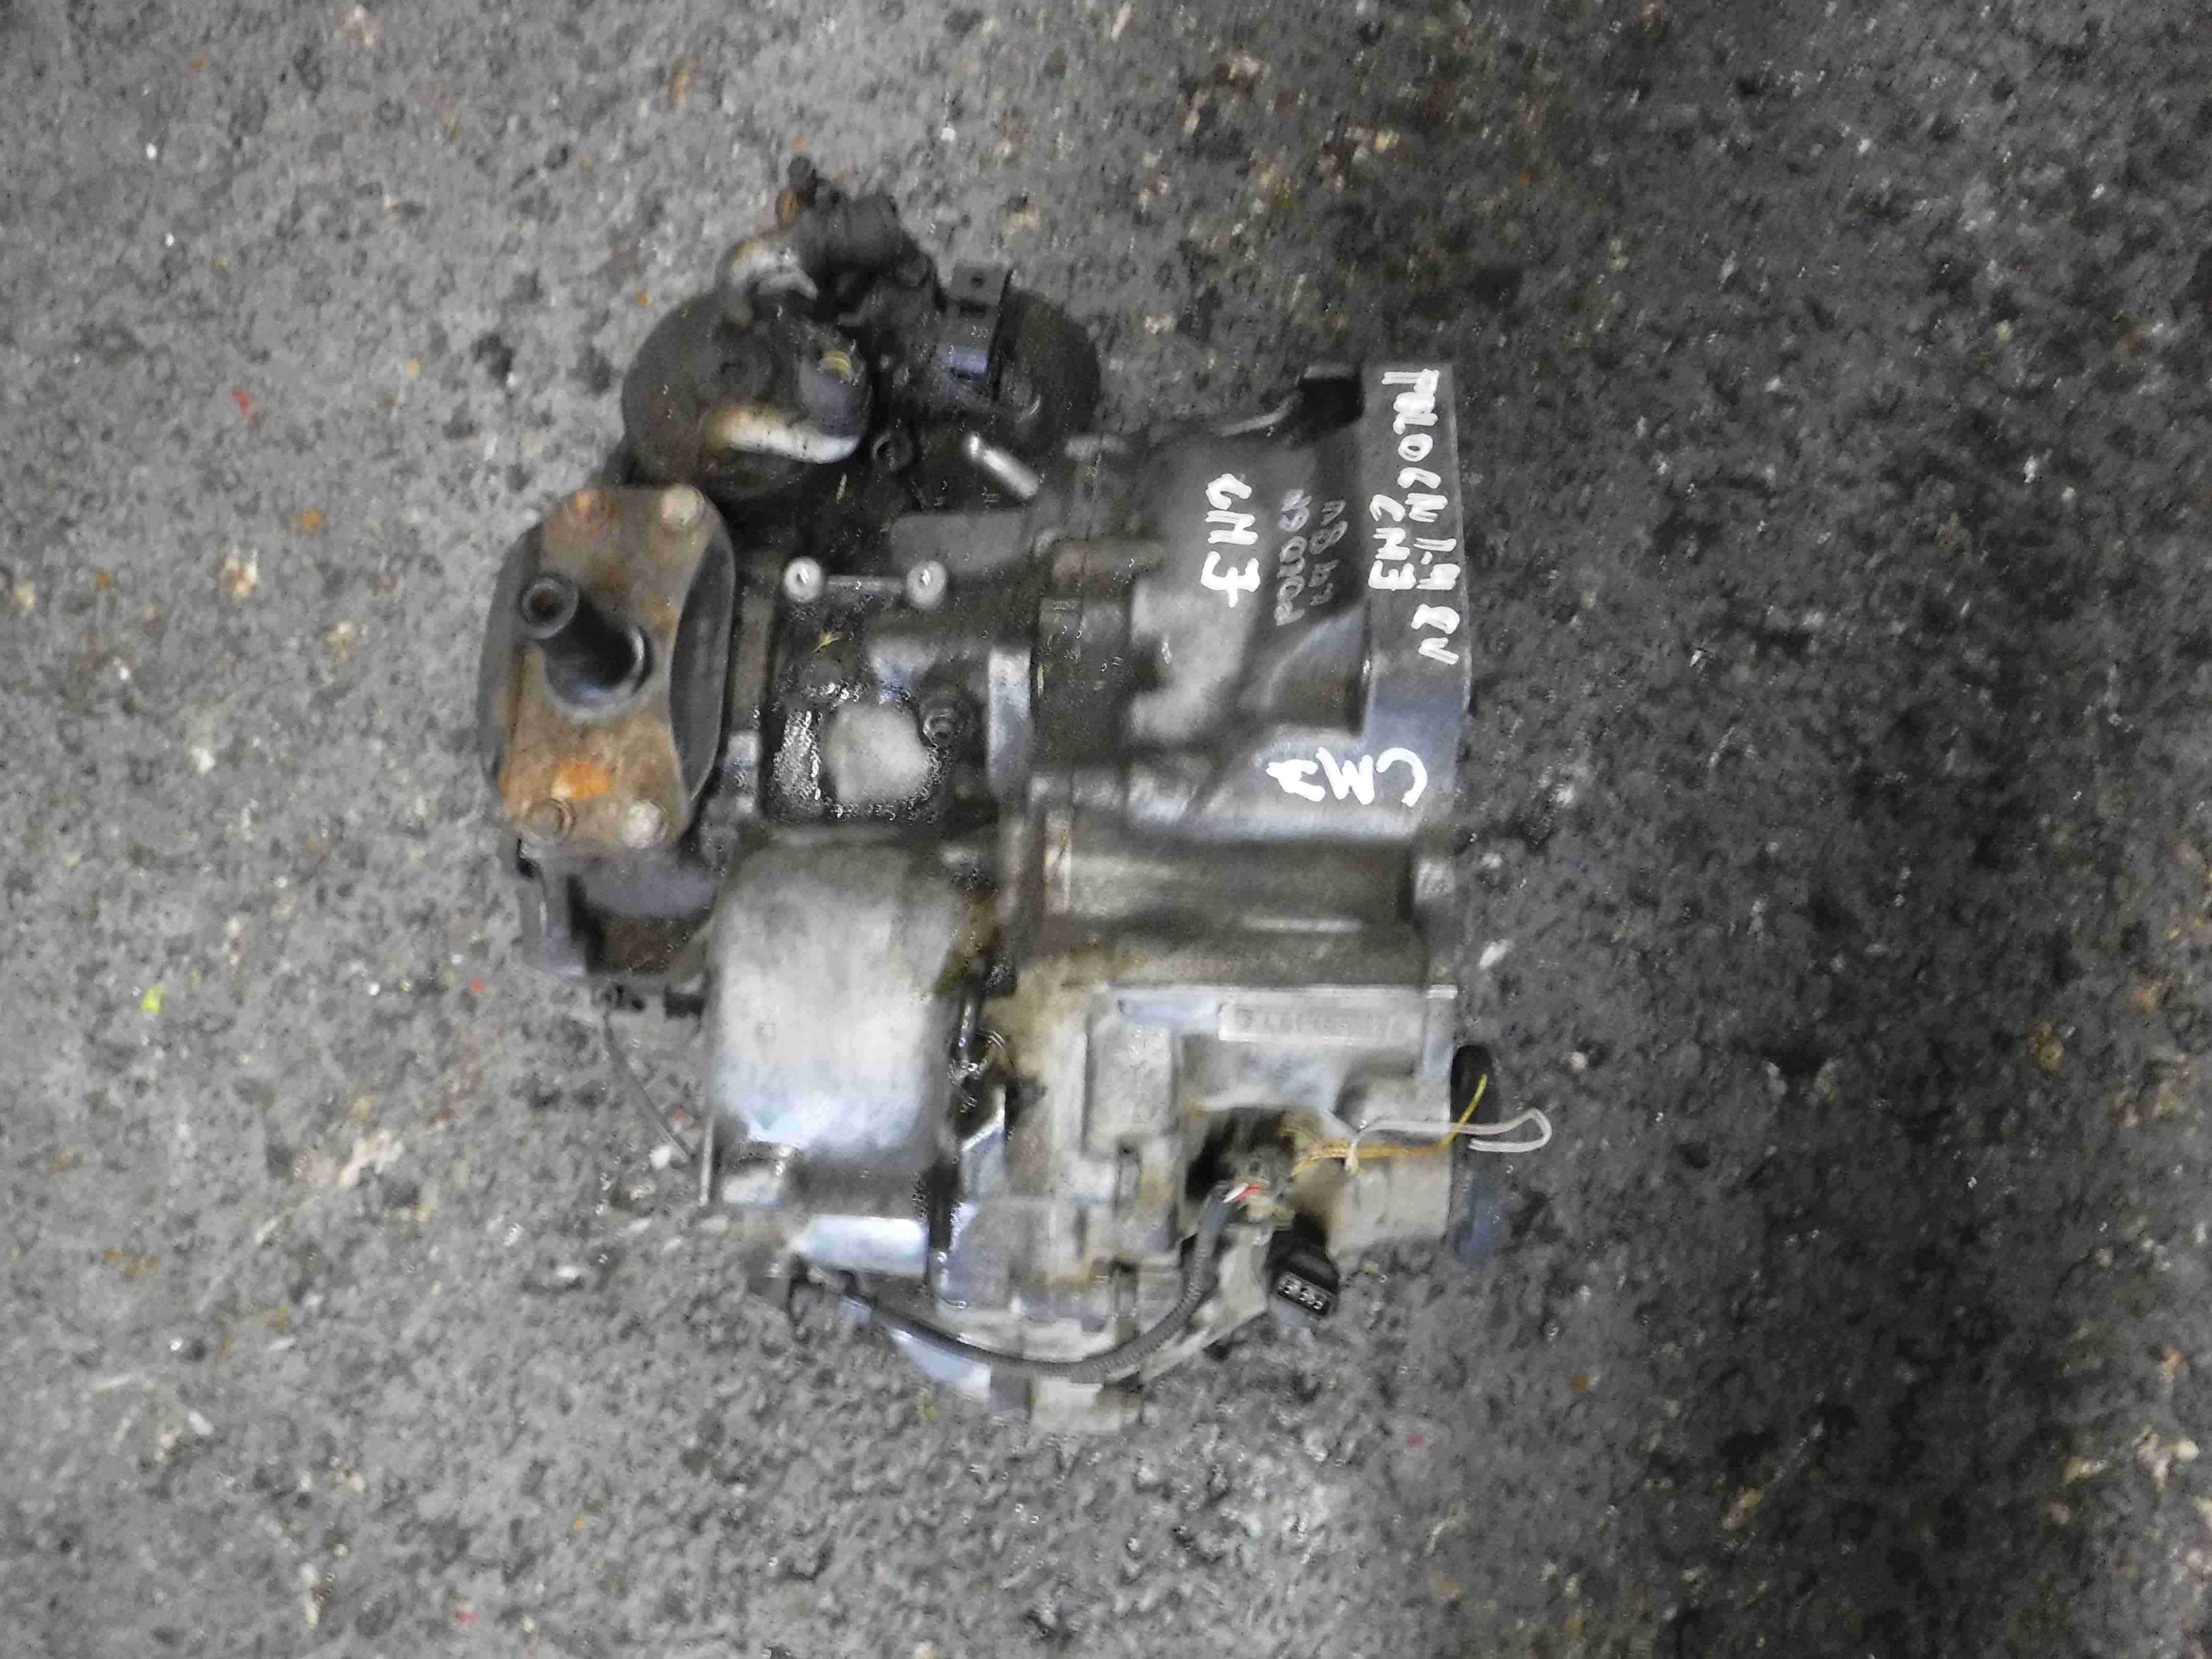 Volkswagen Polo 1995-1999 6N 1.4 8v Automatic Gearbox CMJ